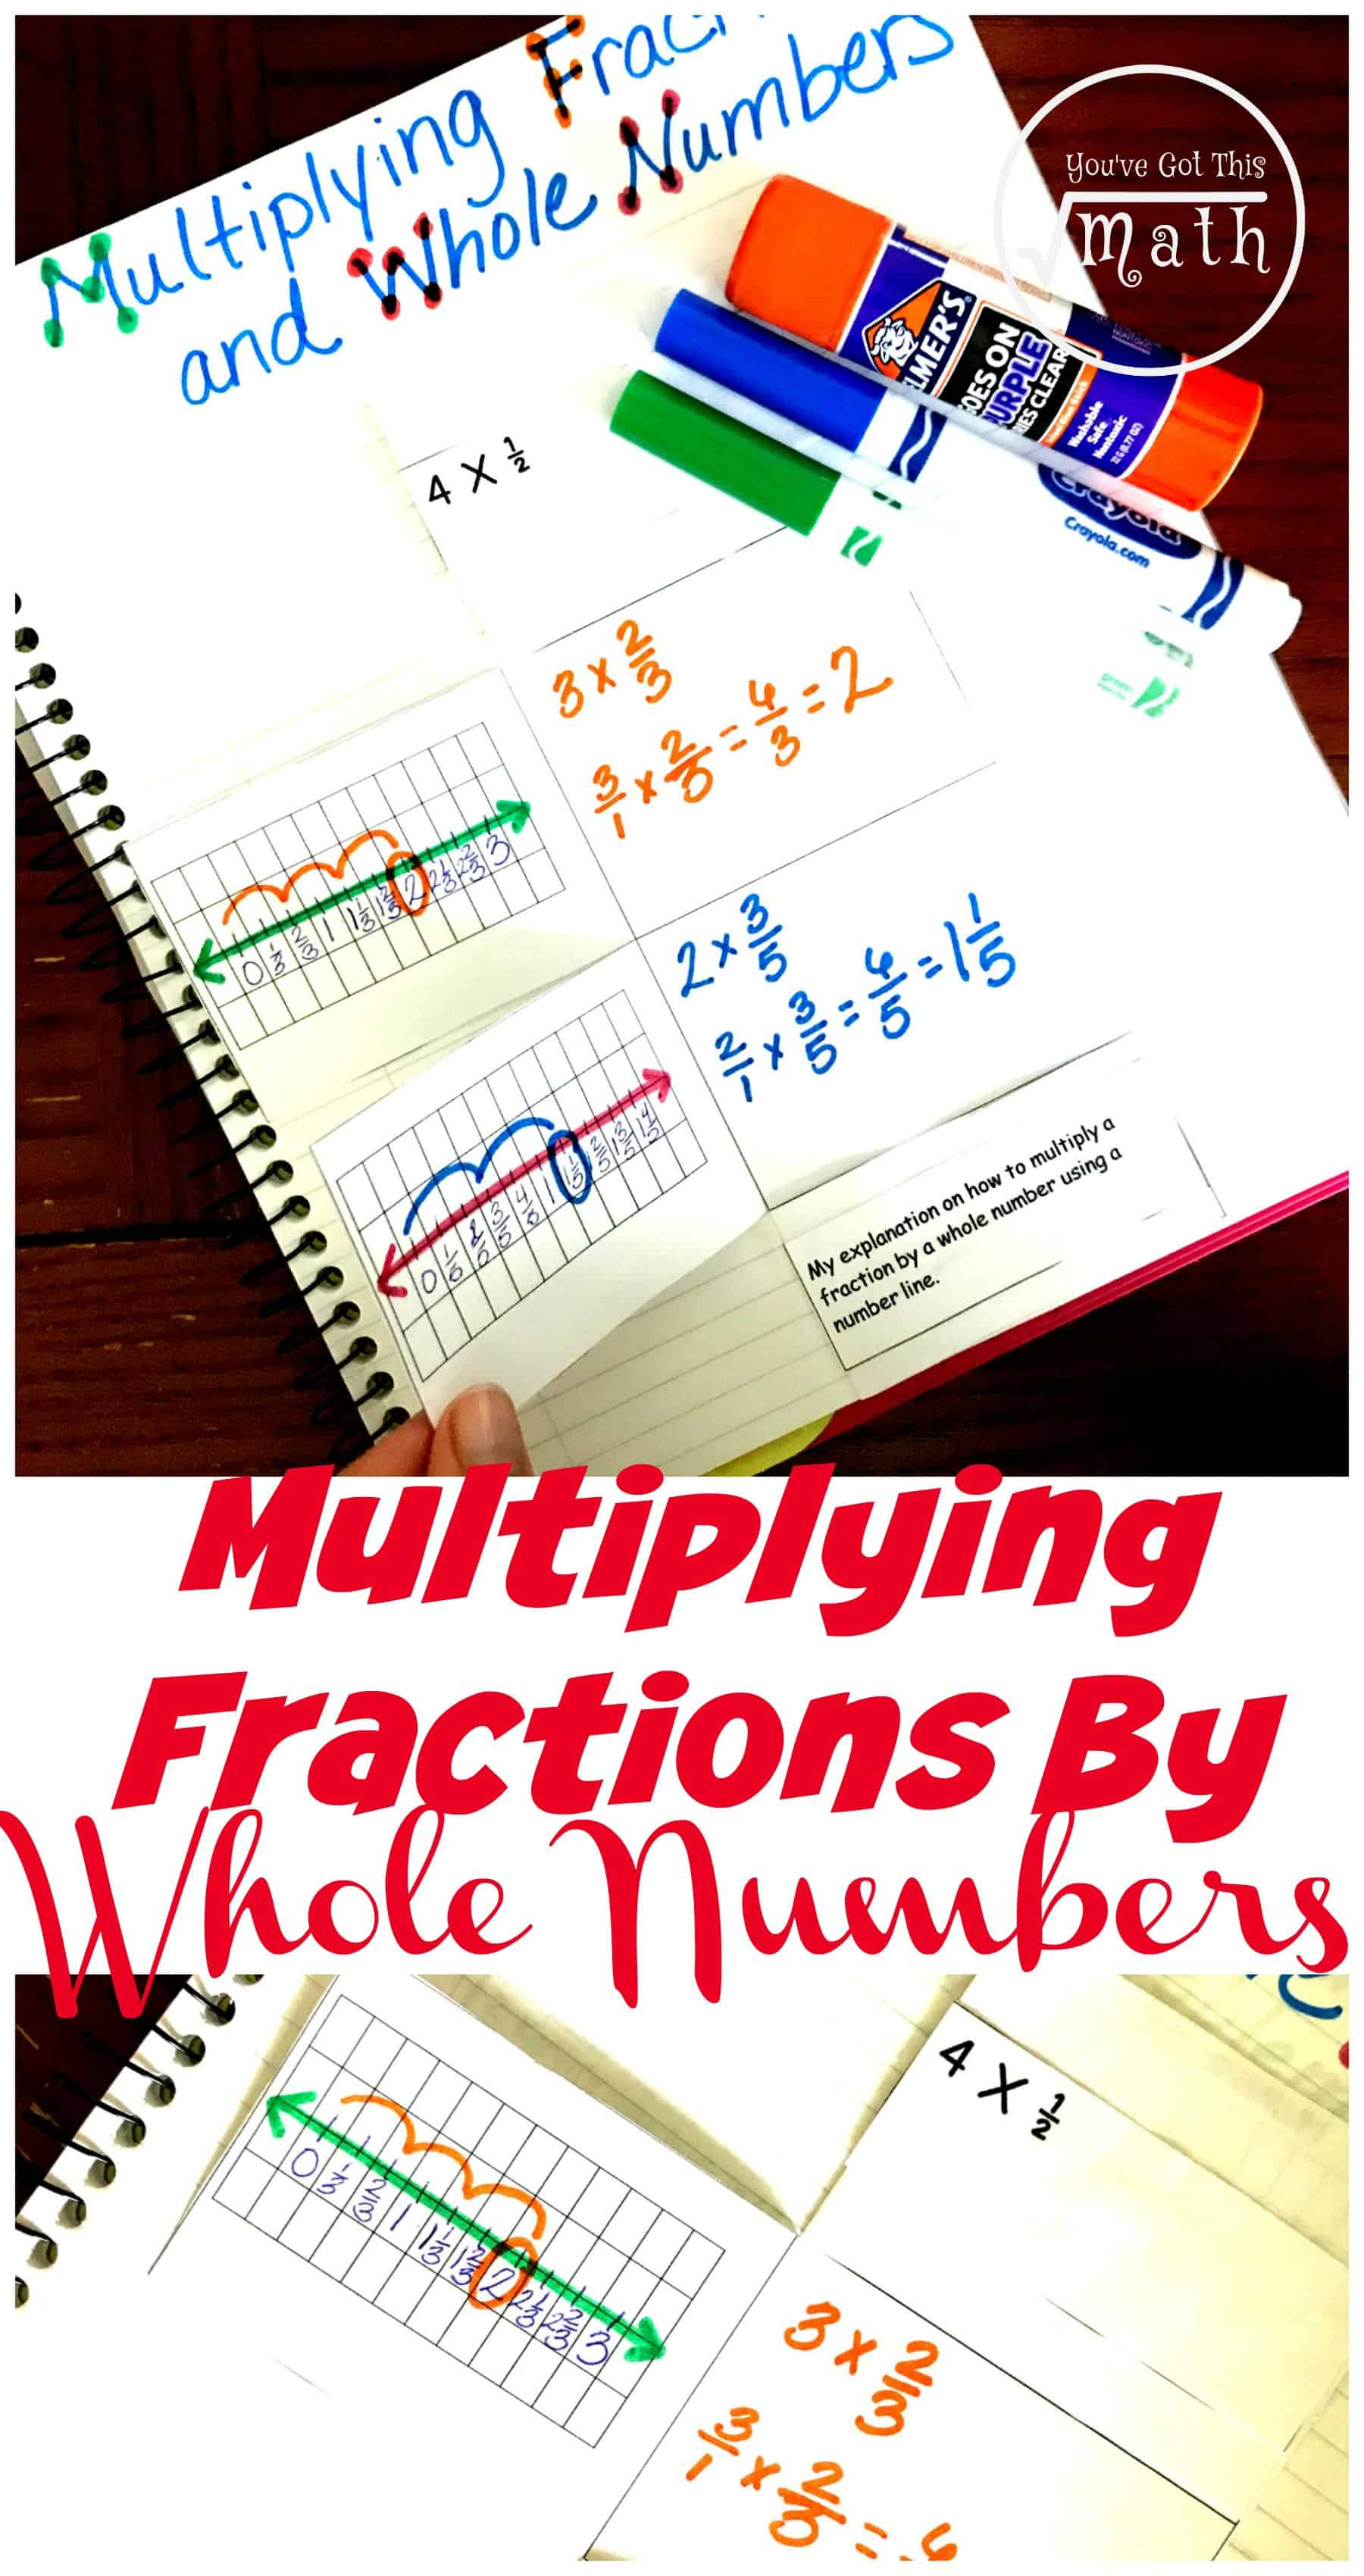 This multiplying fraction activity will help students understand what how to multiply fractions by whole numbers using the number line and an algorithm.